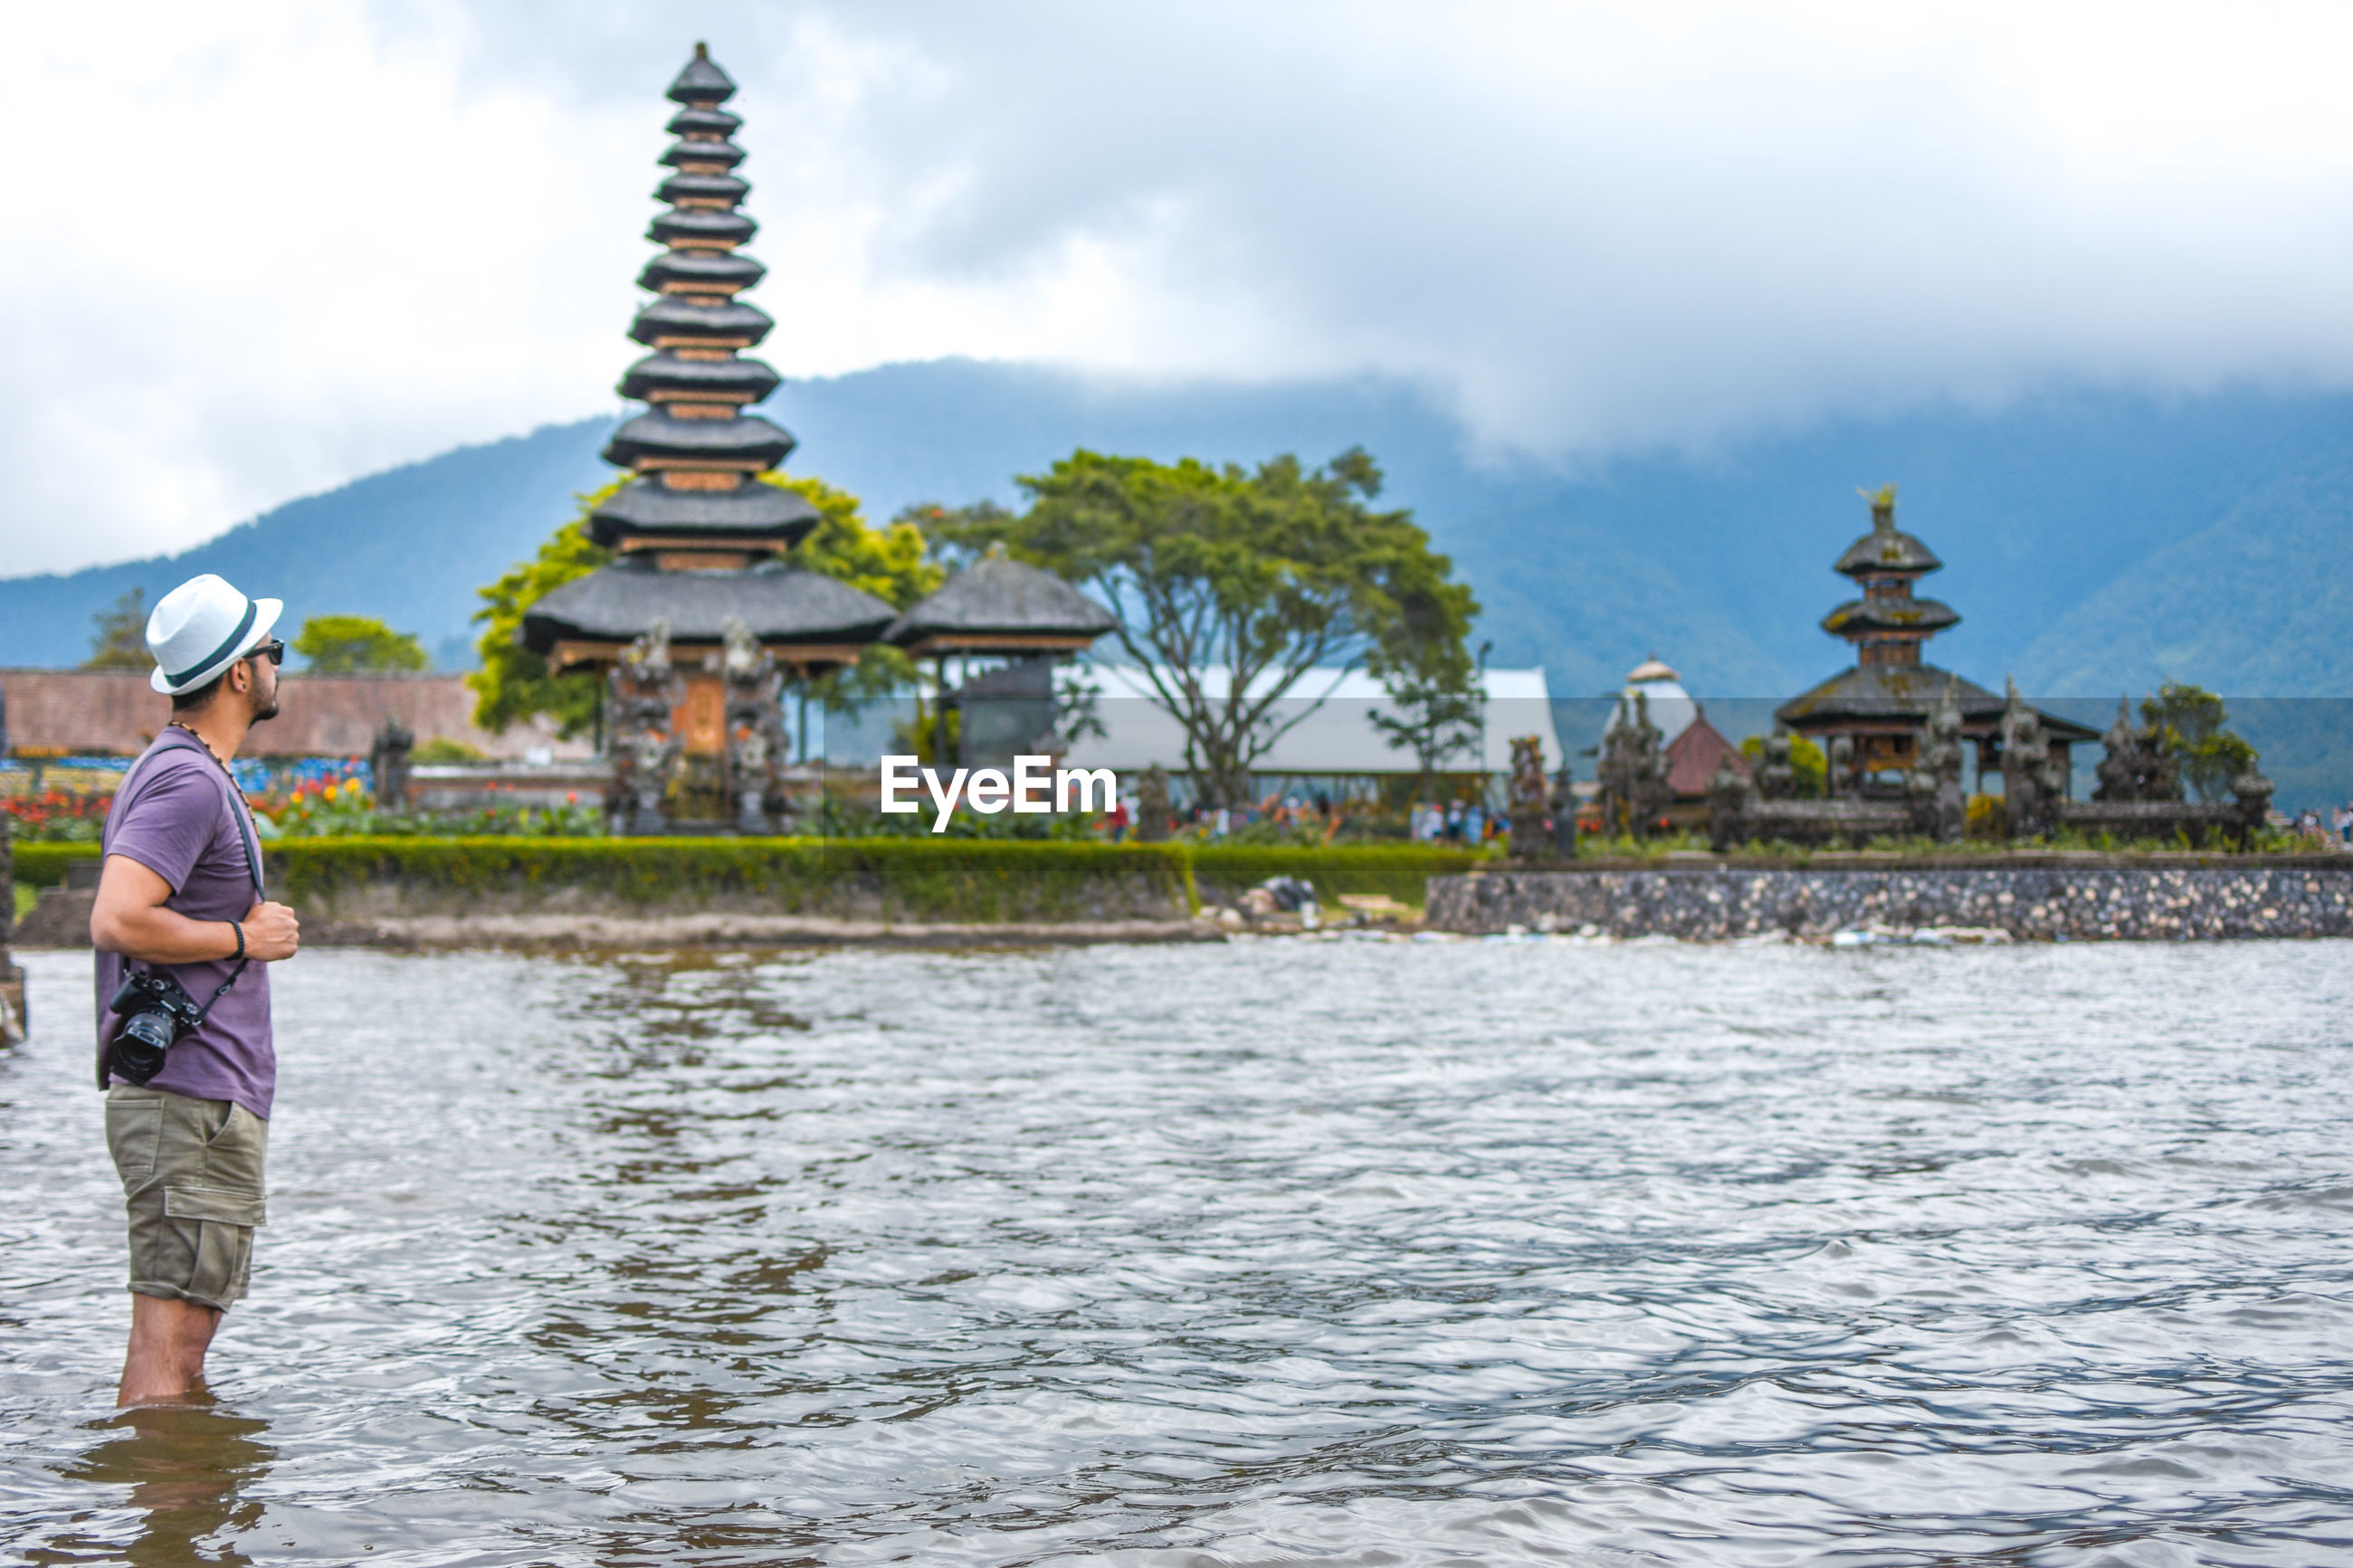 Man standing in river against temple and sky